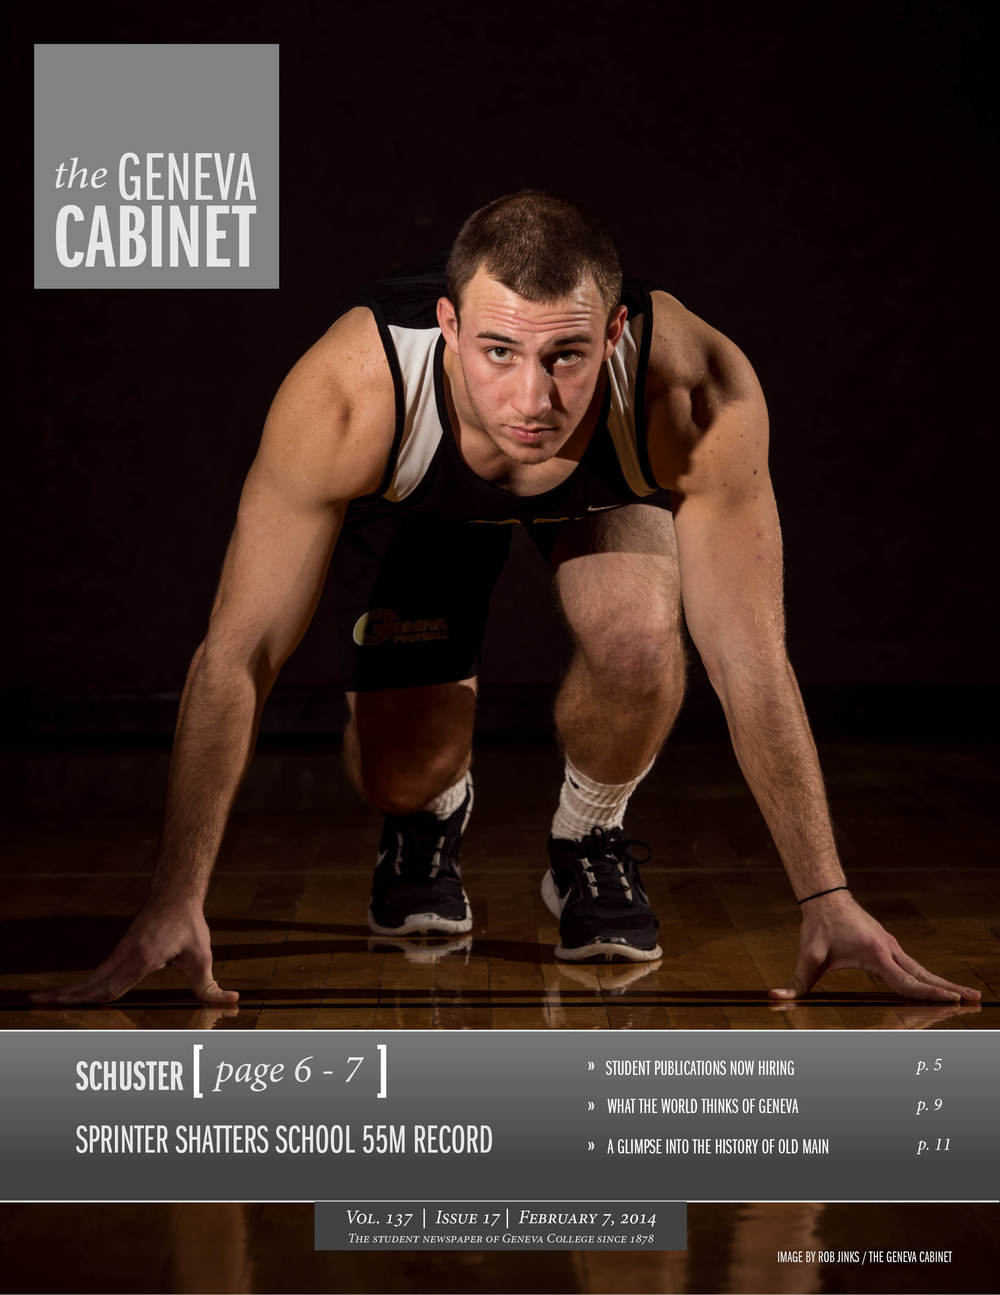 A front cover design of an issue of the Geneva Cabinet, featuring my photograph of Ed Schuster, a record breaking sprinter at Geneva College.